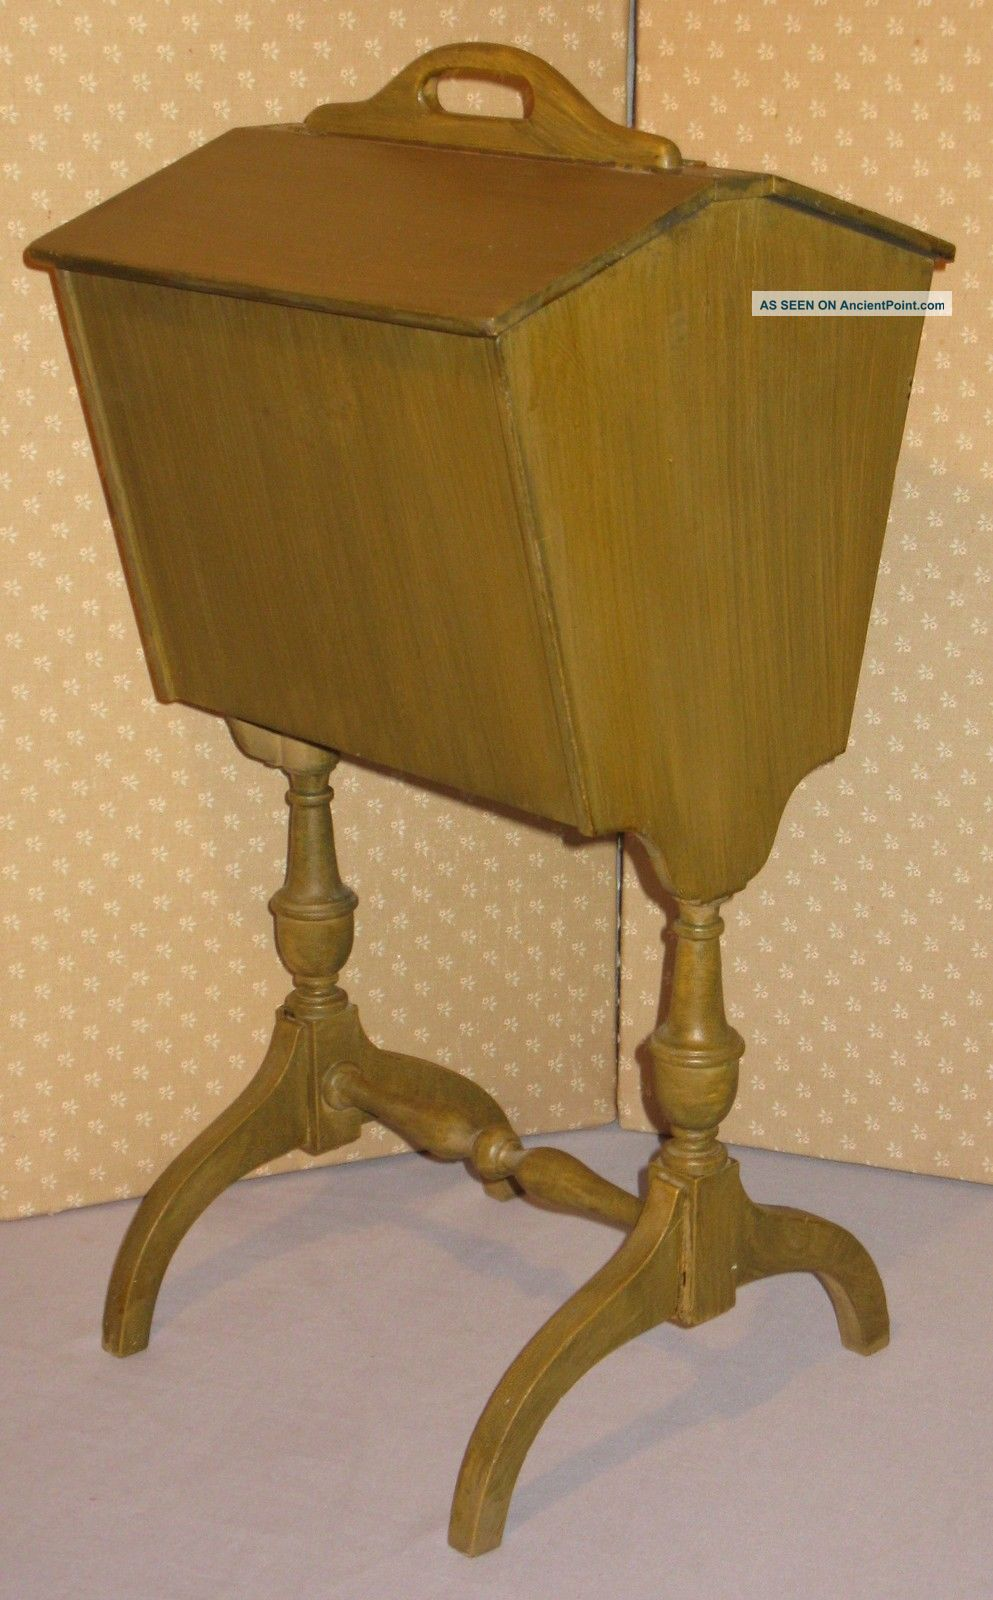 Vintage Sewing Stand Floor Style W/handle Flip Up Top Inside Movable Tray Furniture photo